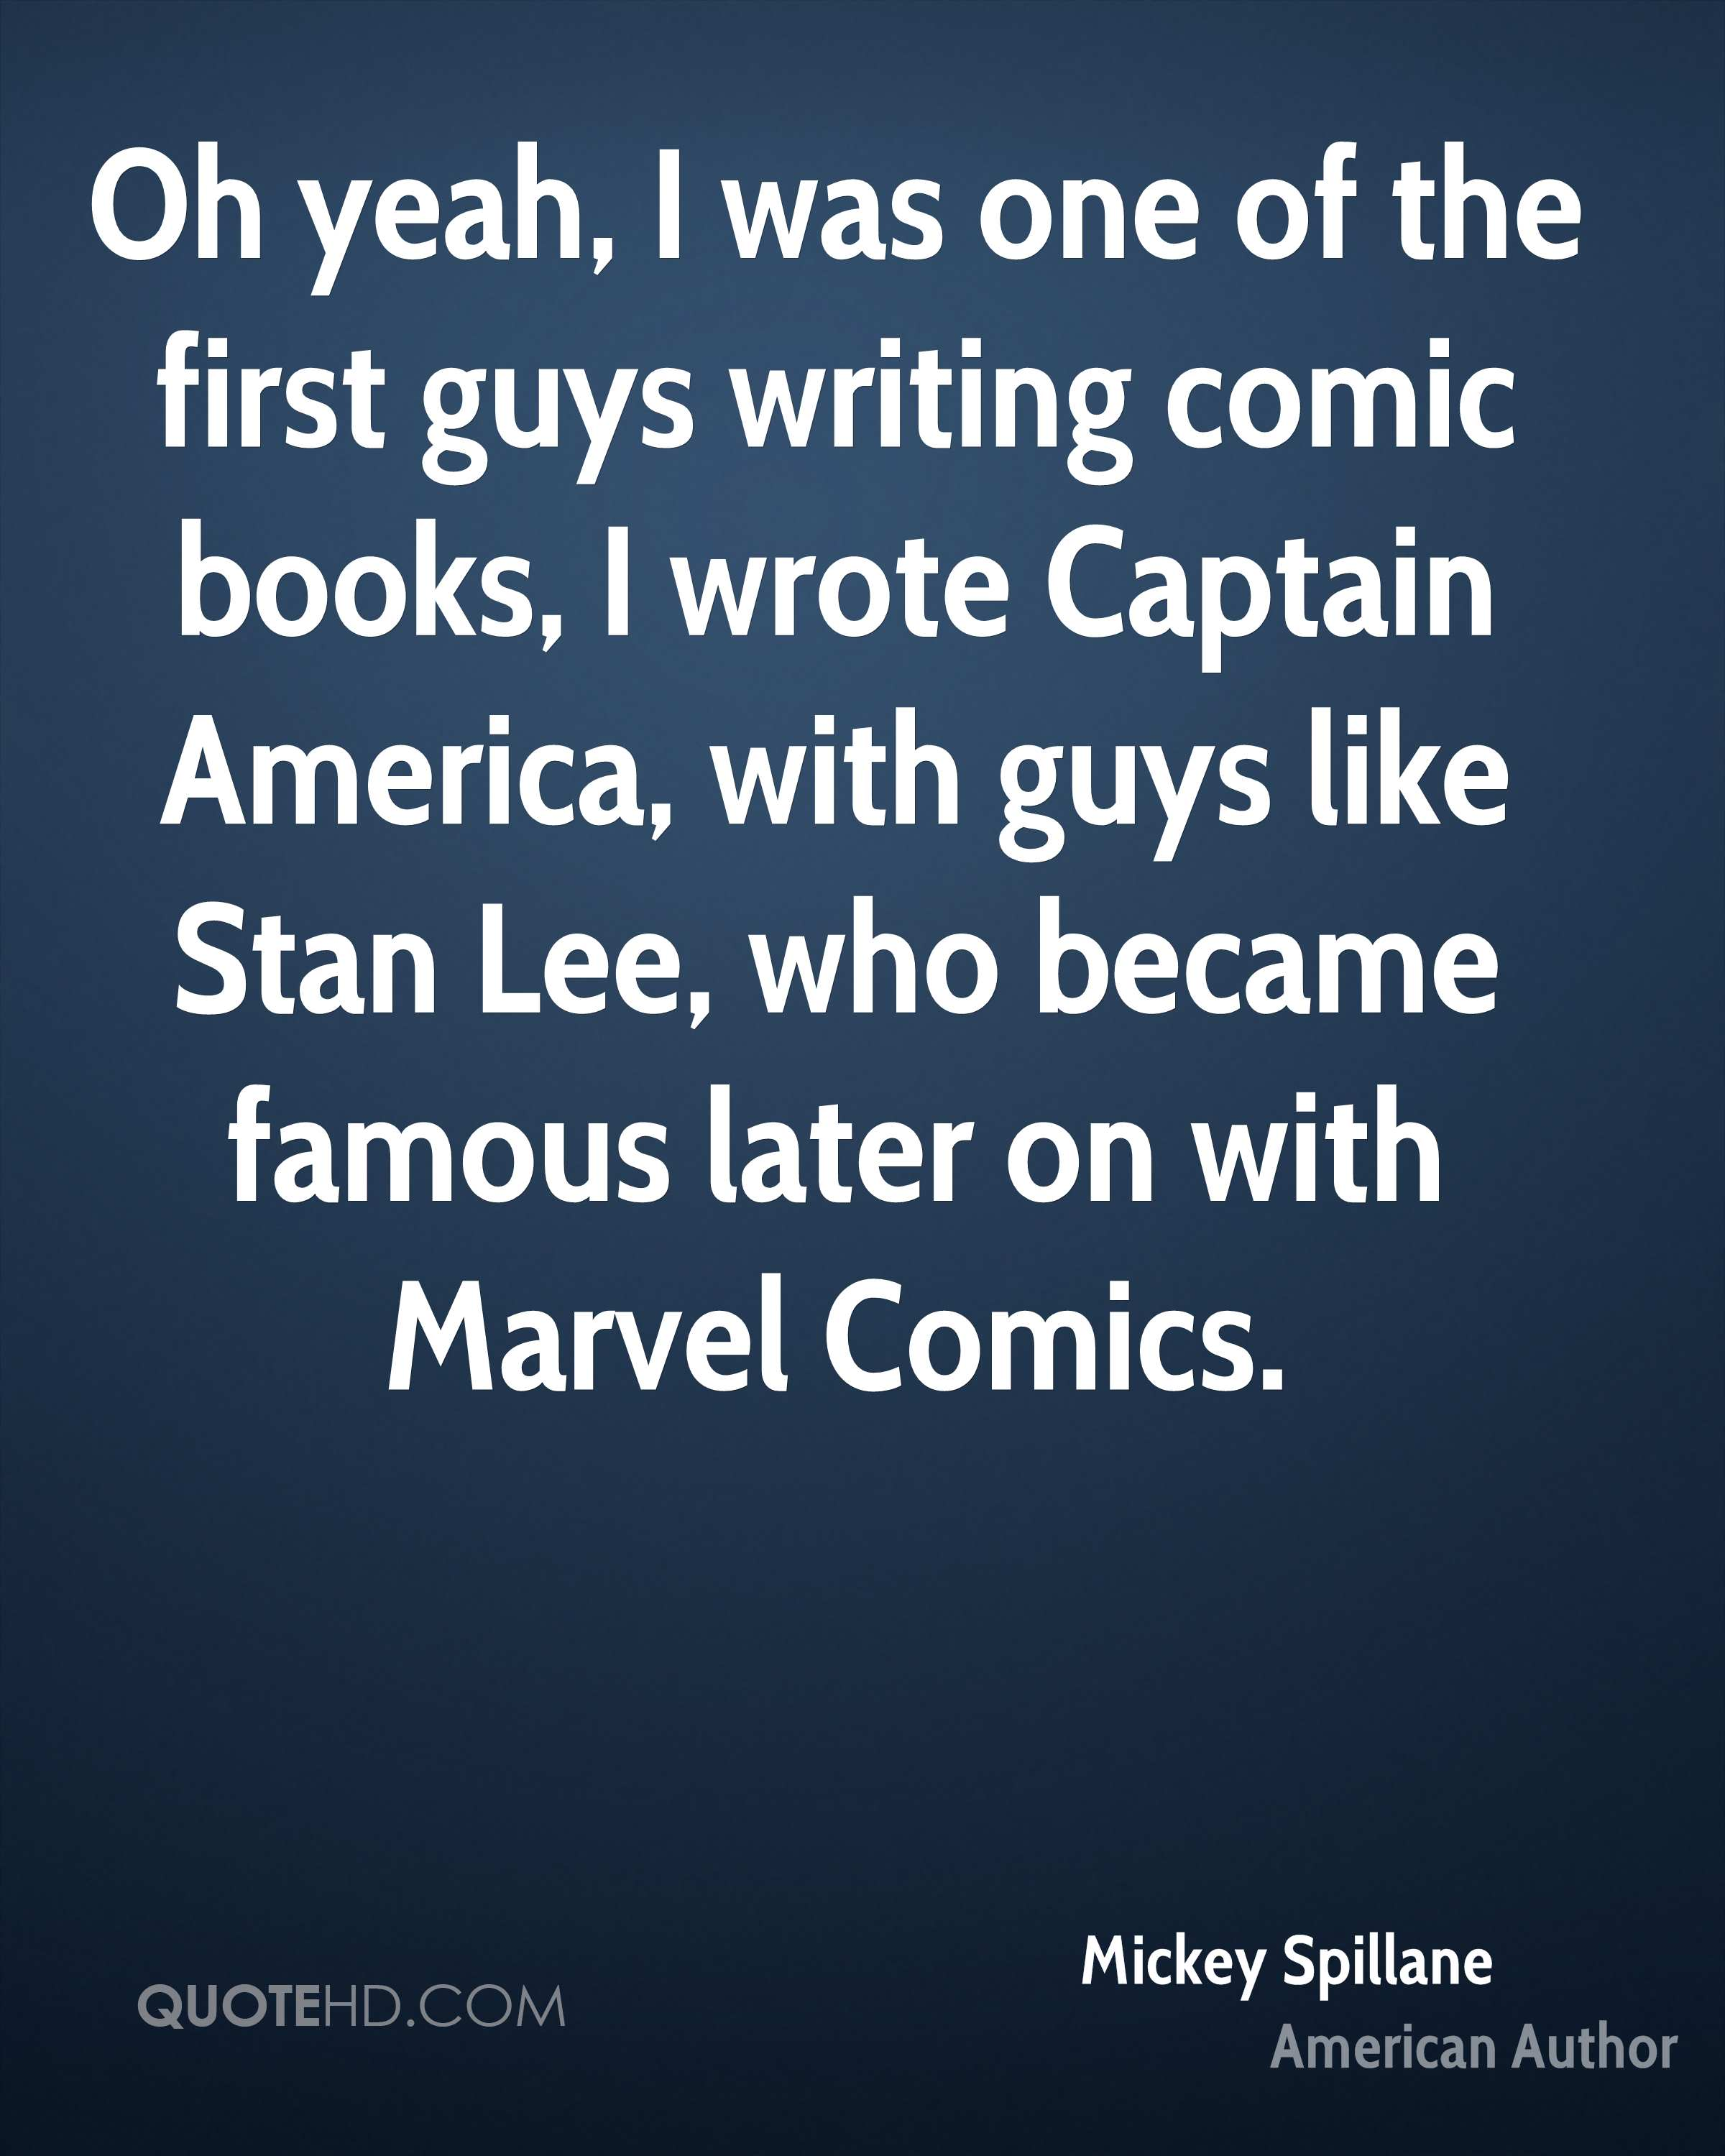 Oh yeah, I was one of the first guys writing comic books, I wrote Captain America, with guys like Stan Lee, who became famous later on with Marvel Comics.